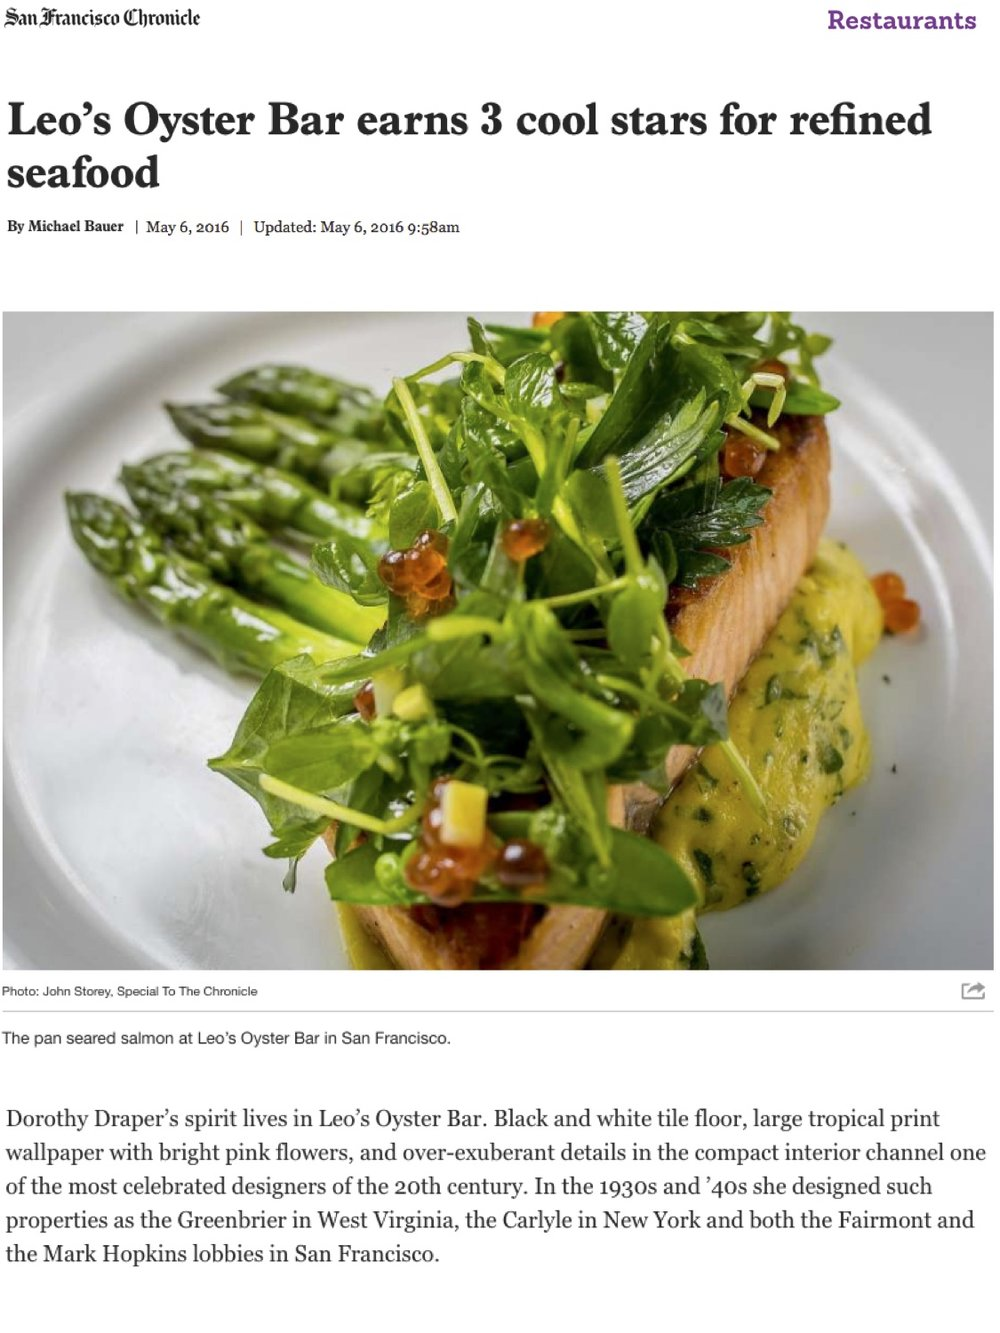 Leo's - SF Chron 3 Star Review, May 2016.jpg